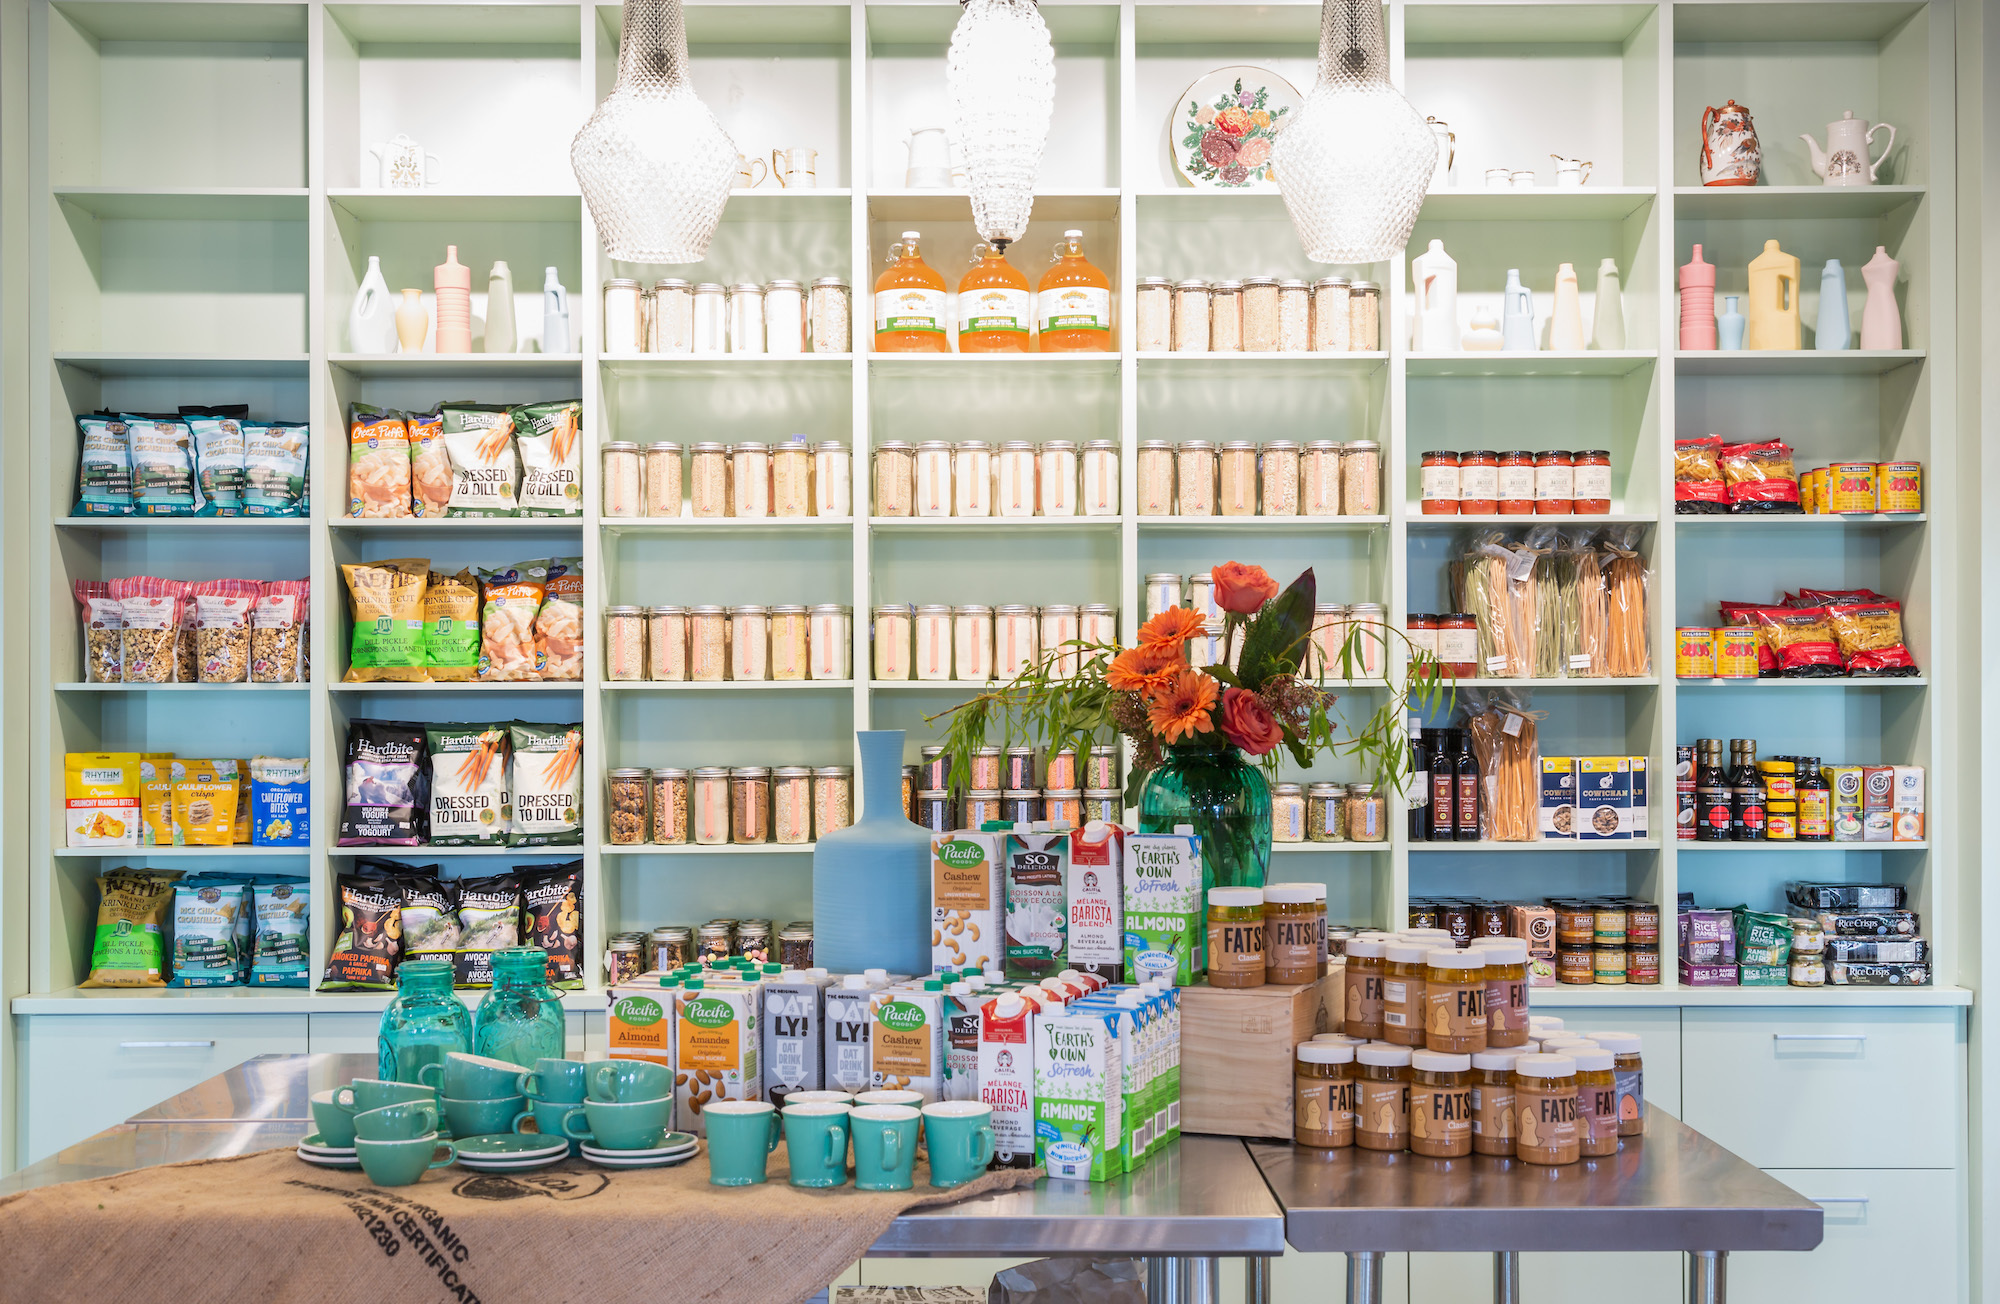 A general store with shelves lined with products.